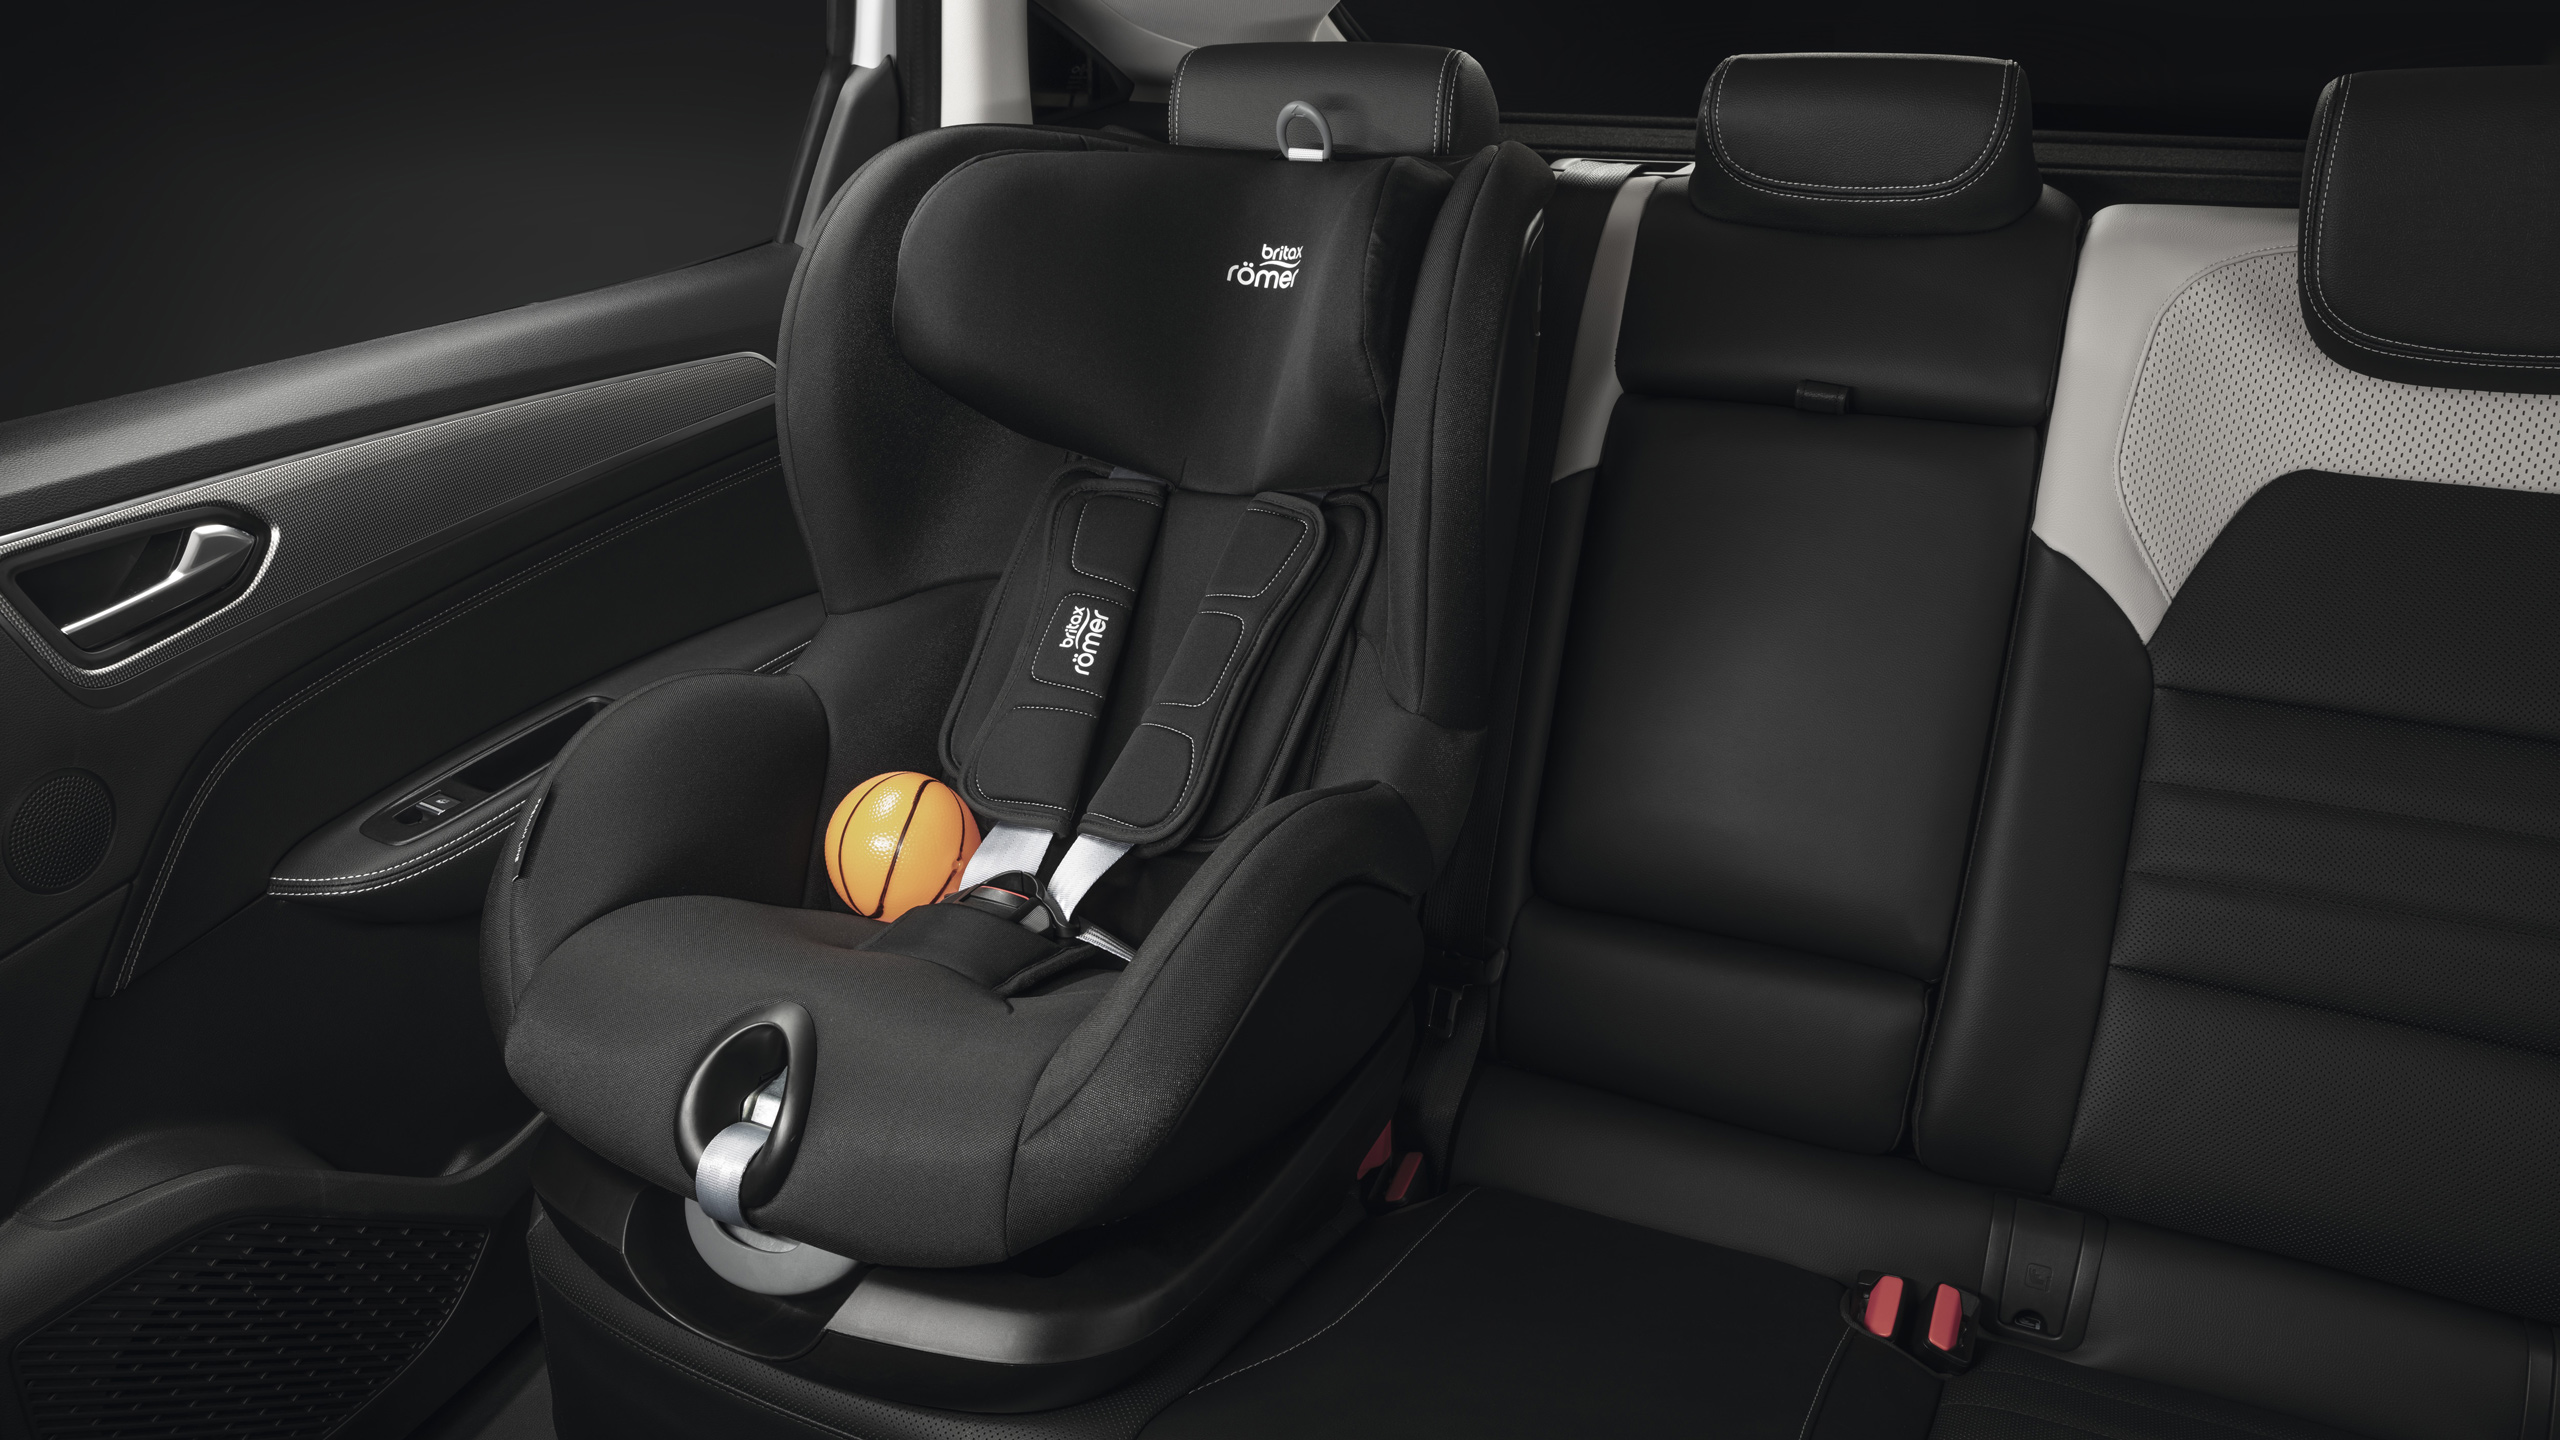 ISOFIX child fixing point on front passenger and rear outermost seats